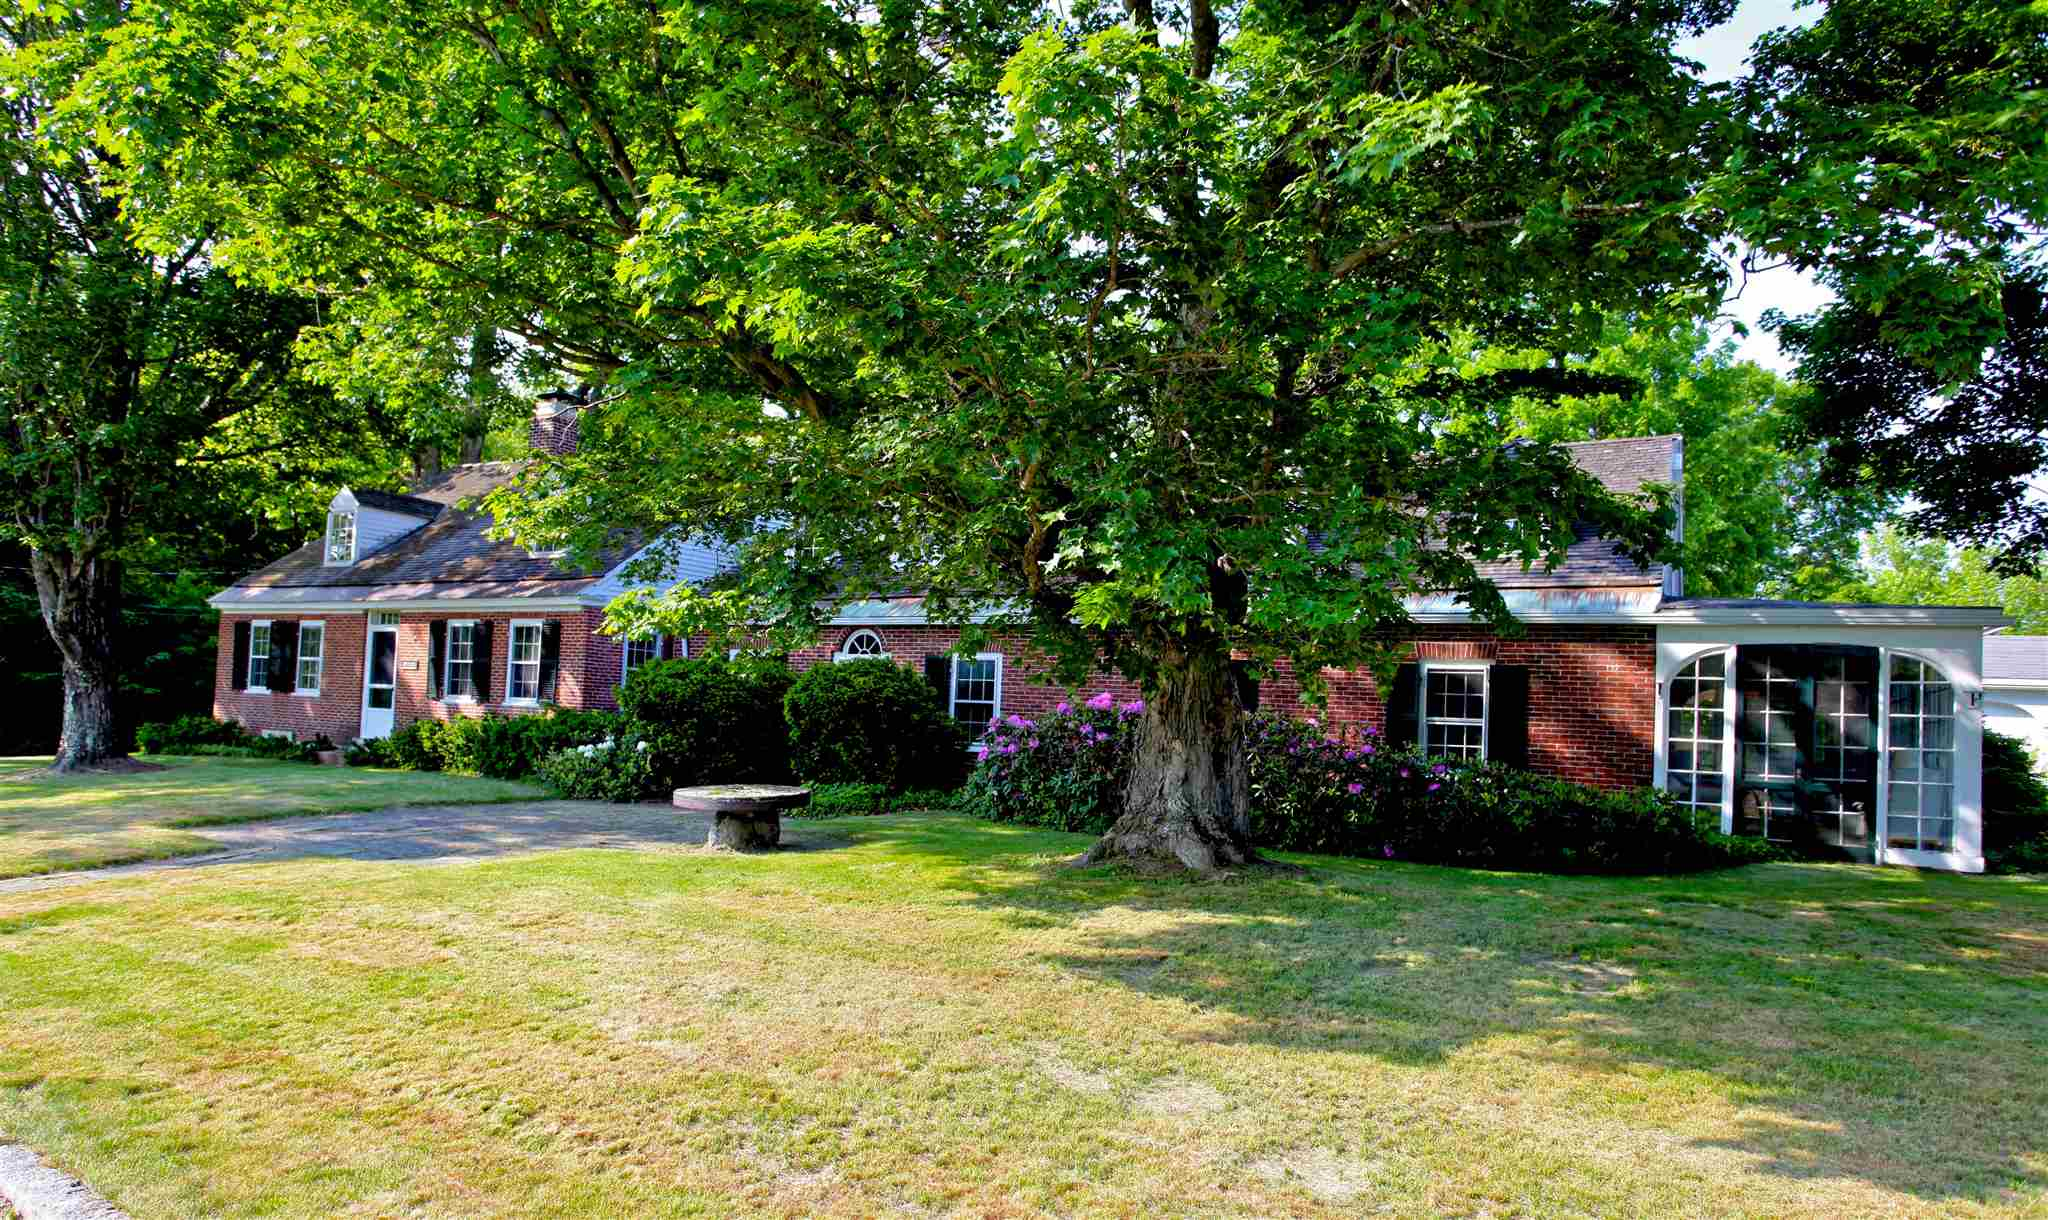 MLS 4807018: 170 Morgan Hill Road, New London NH